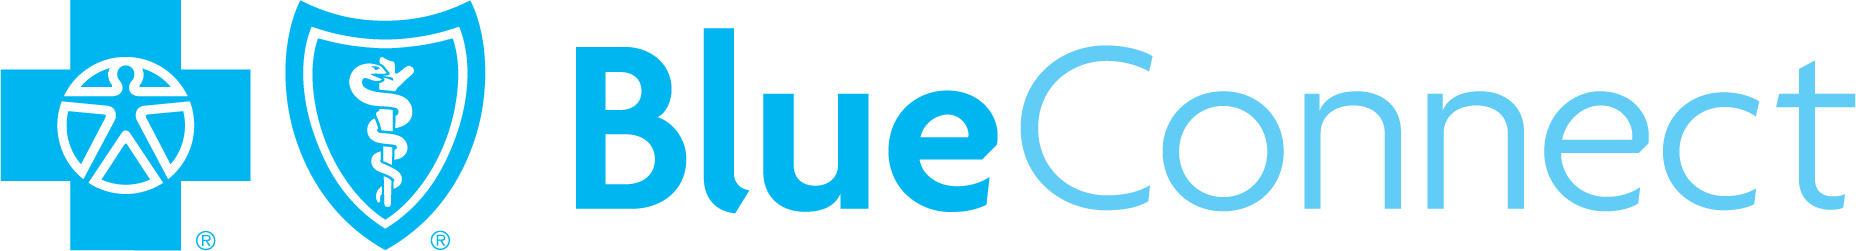 blue connect logo